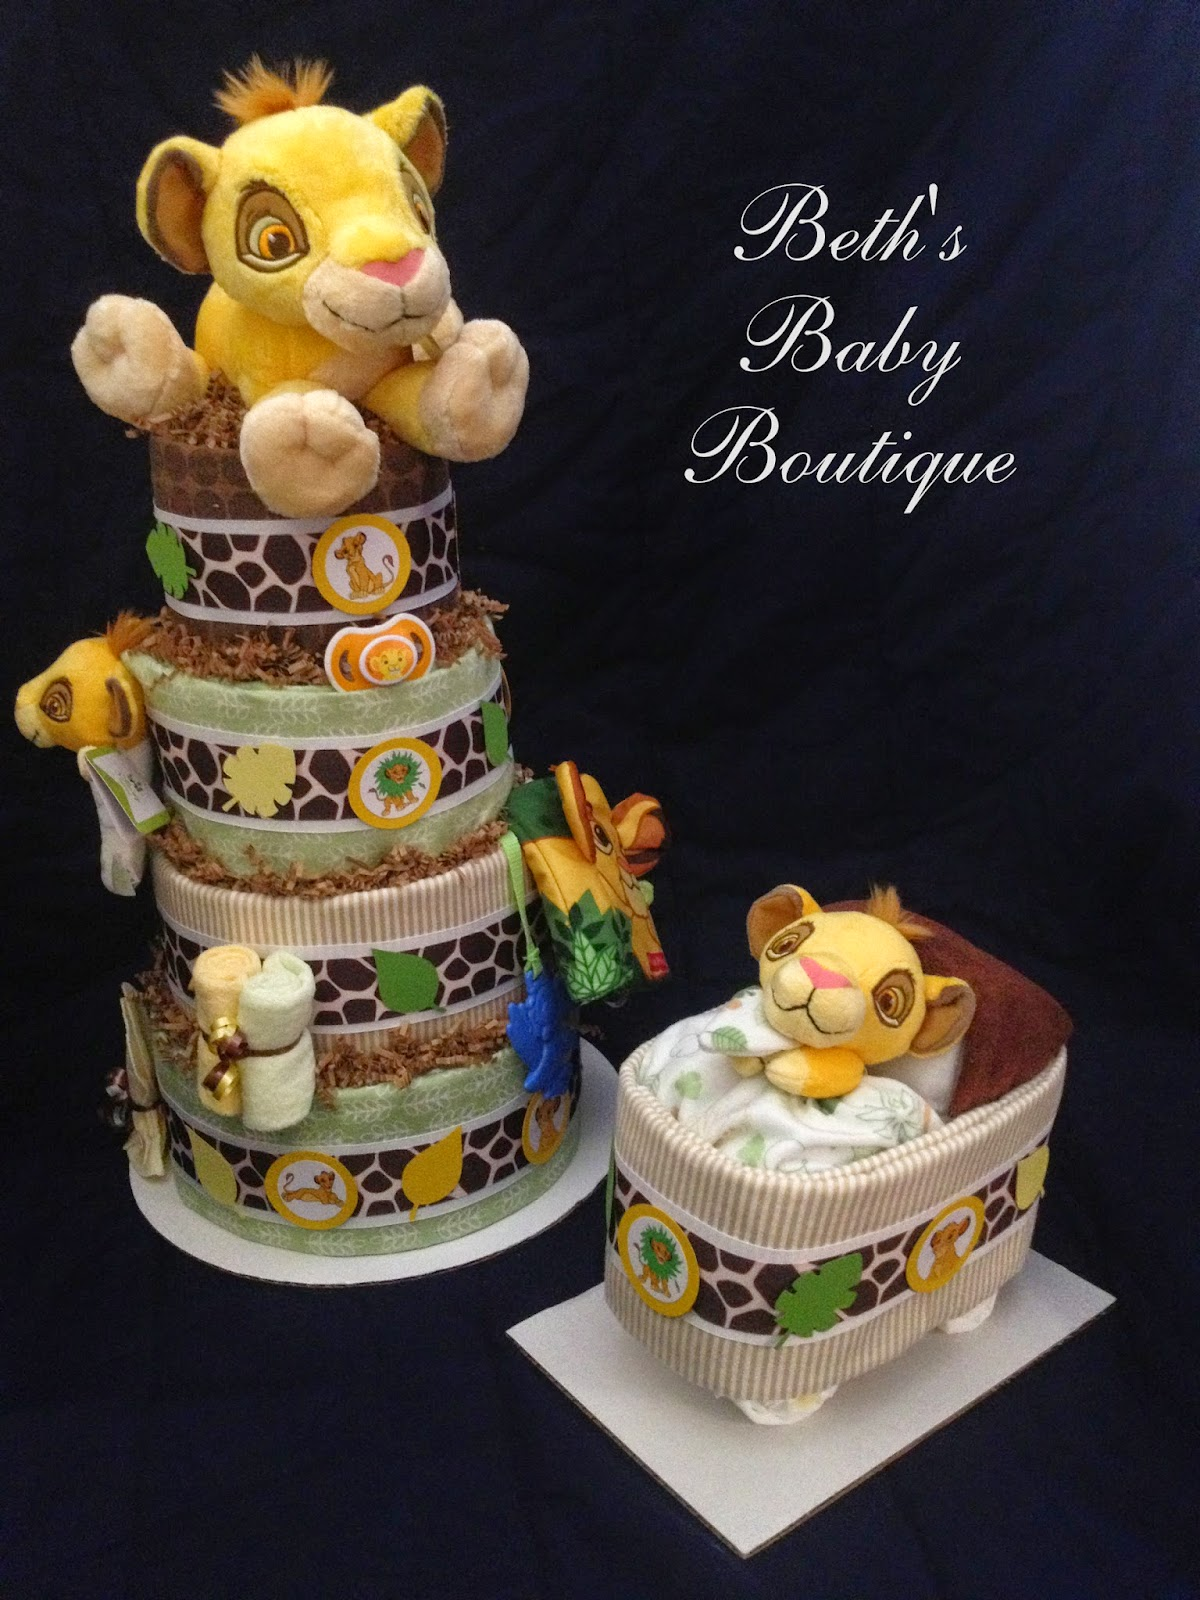 This Cake Had Tons Of Items And Visual Appeal Without Going Overboard Costing A Fortune My Customer Loved It Which Is As Always The Best Part